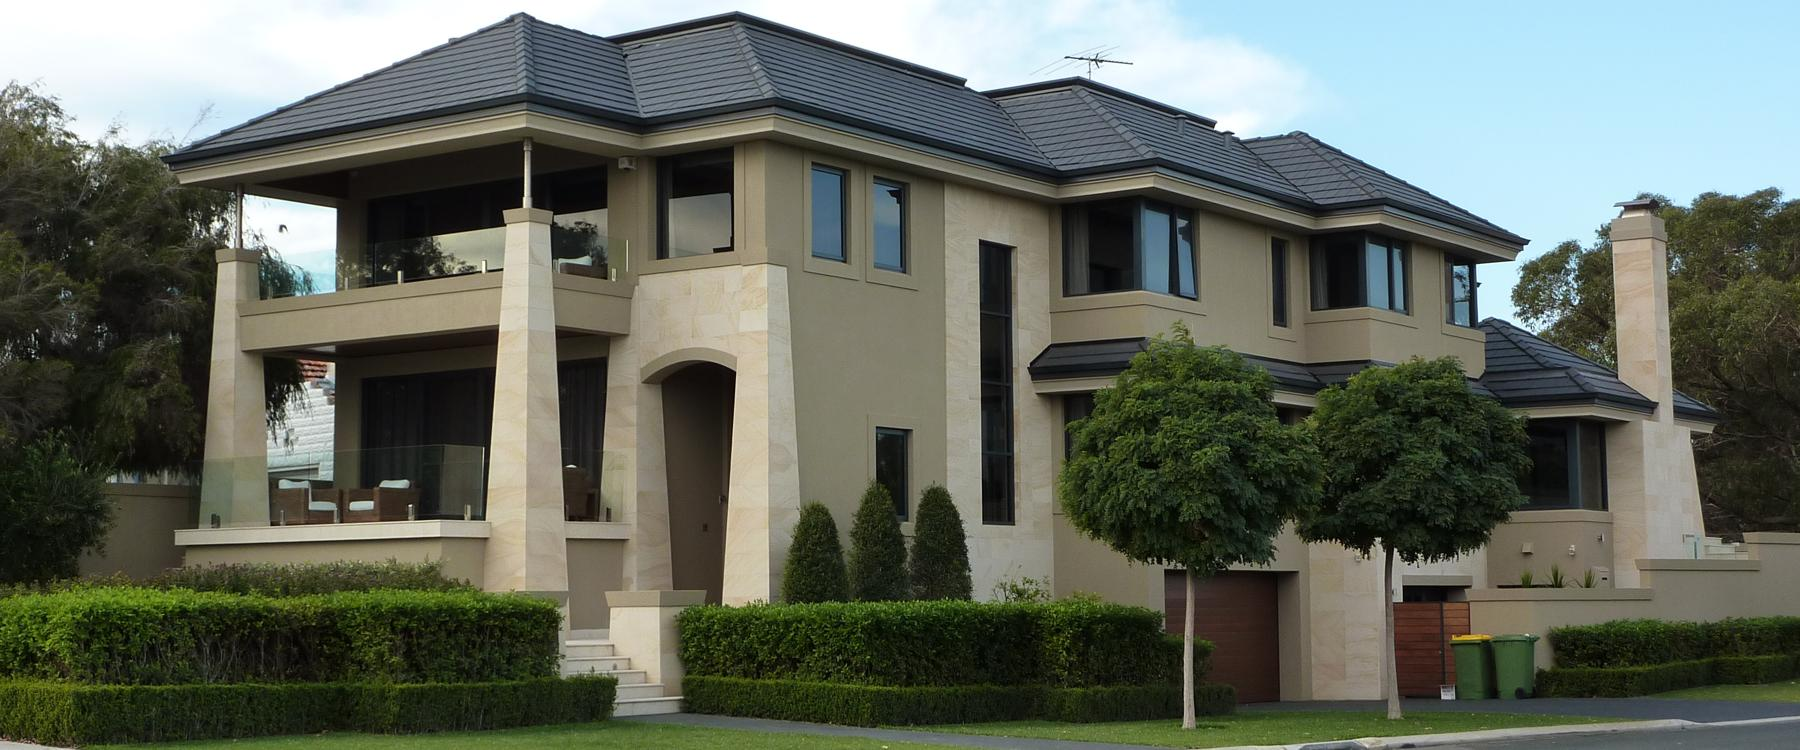 Limestone Perth Stone Cladding Limestone Suppliers